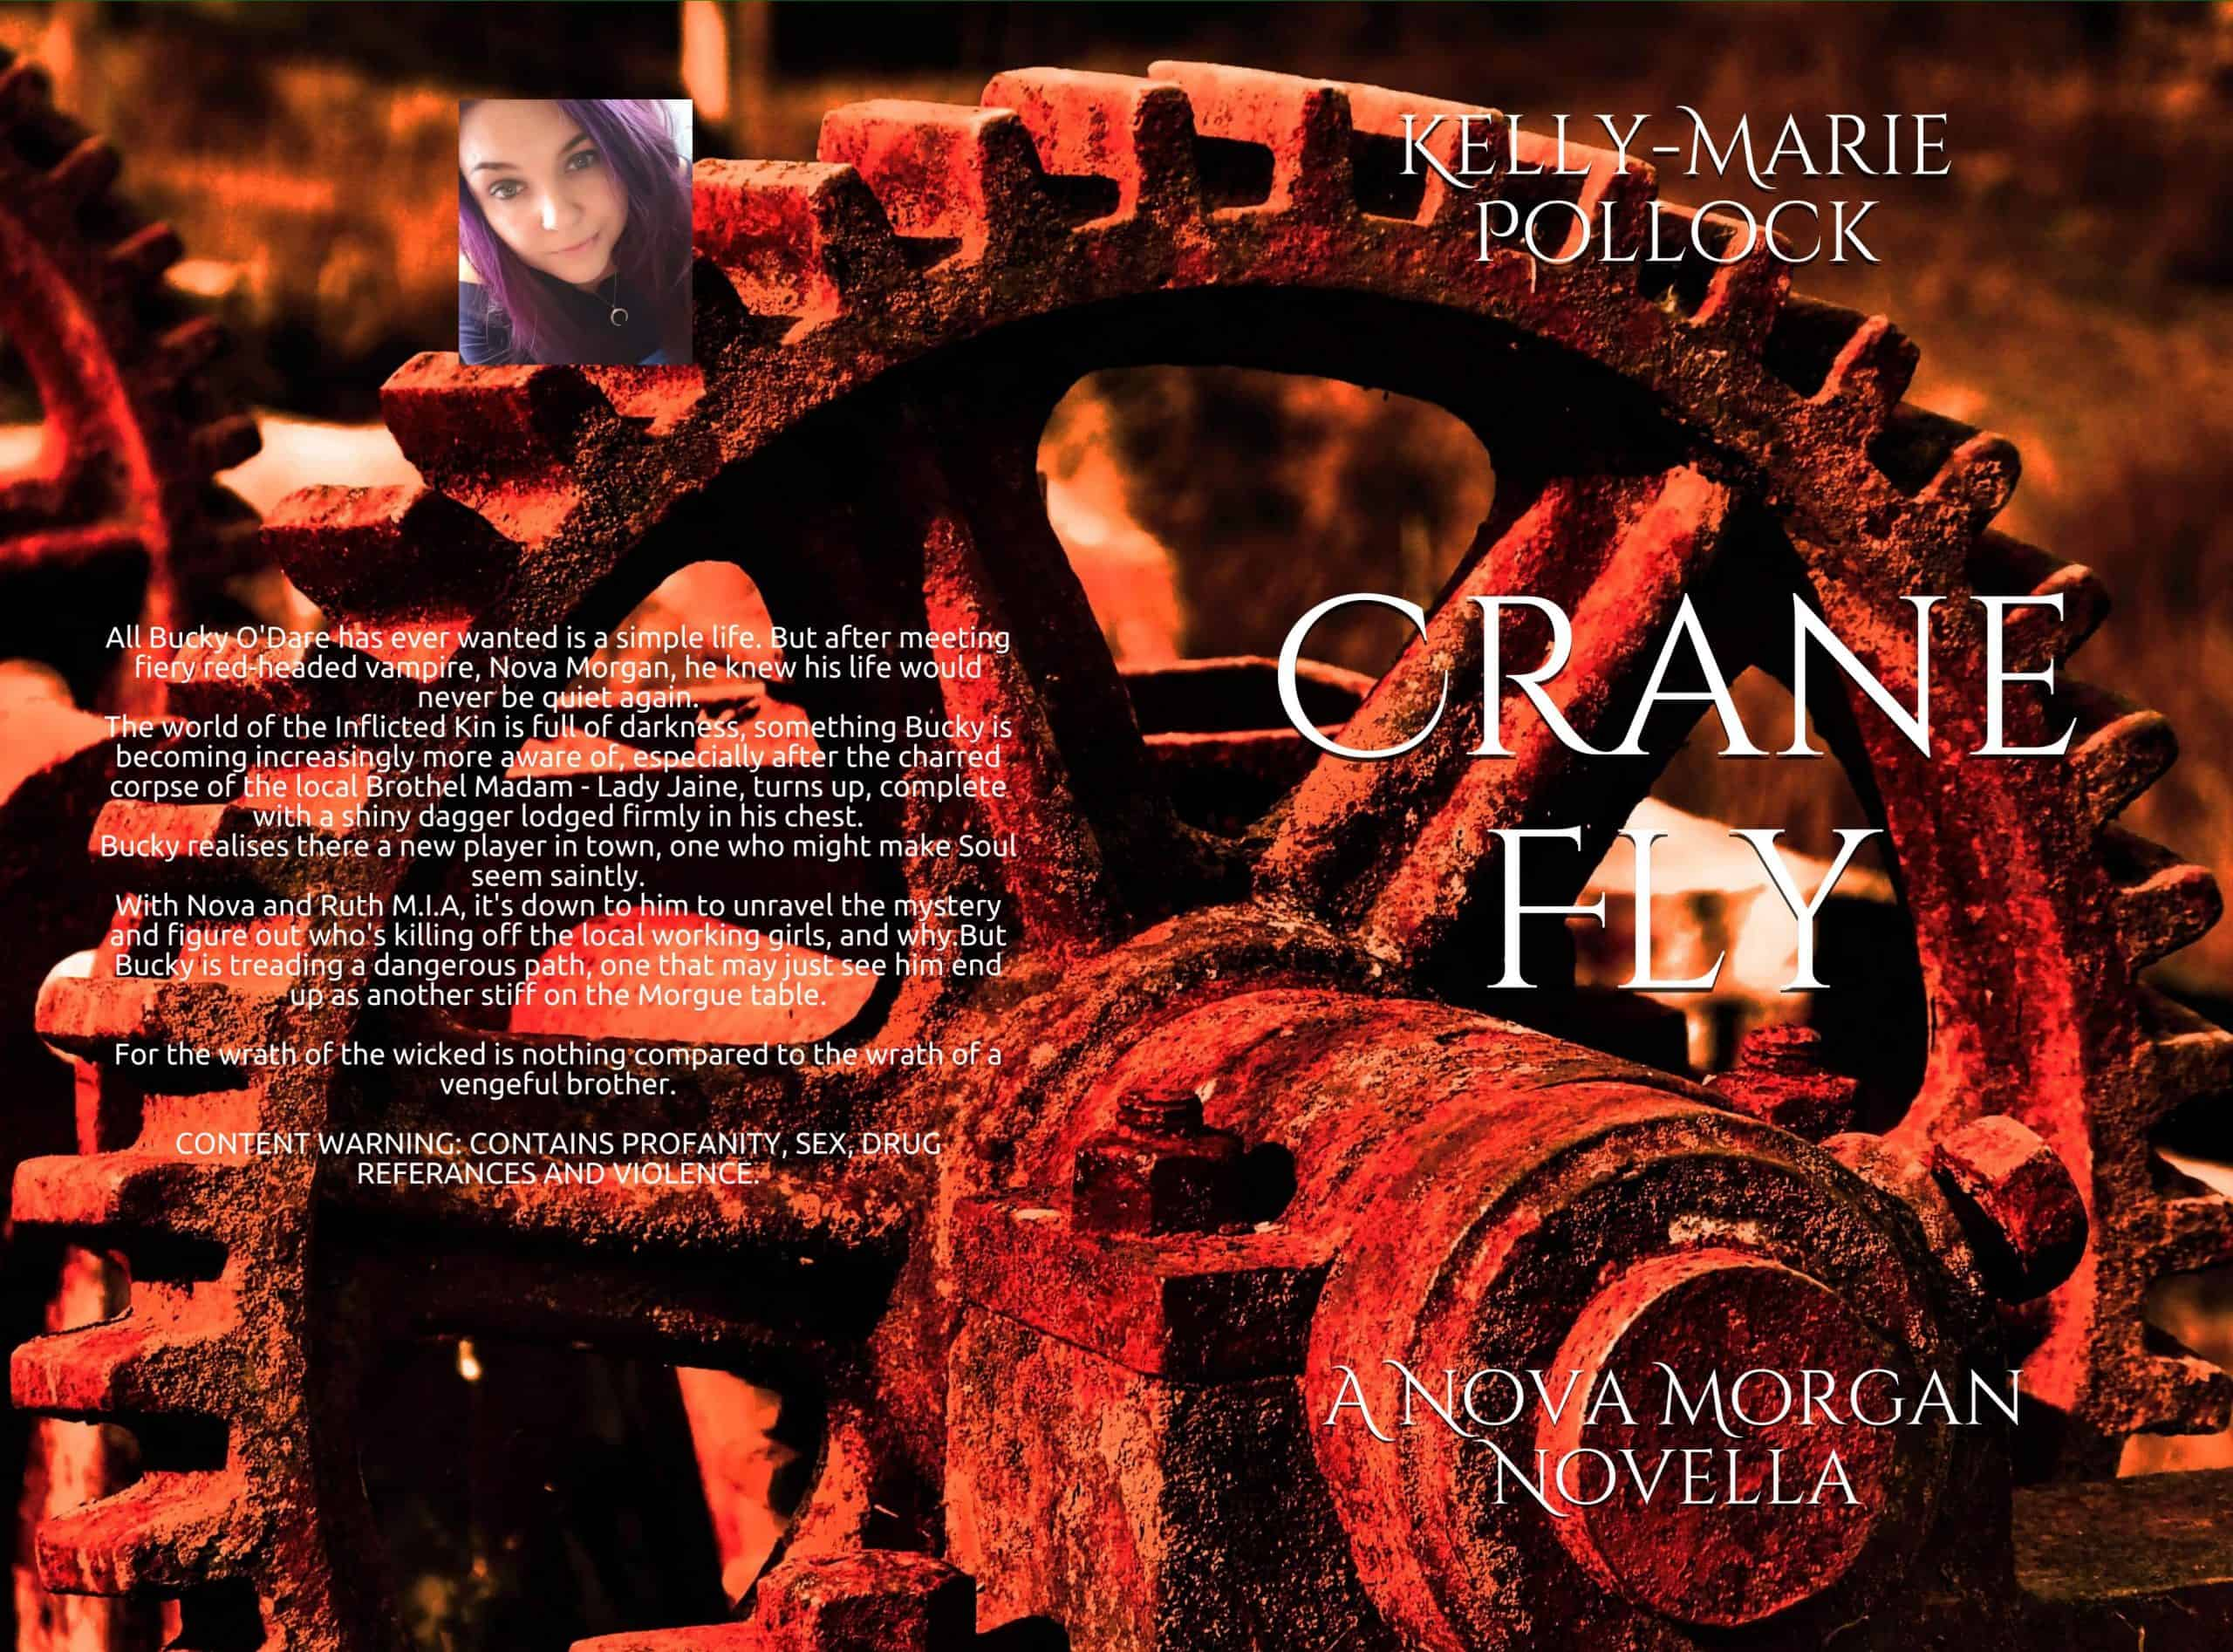 The cover and blurb for Crane Fly by Kelly-Marie Pollock